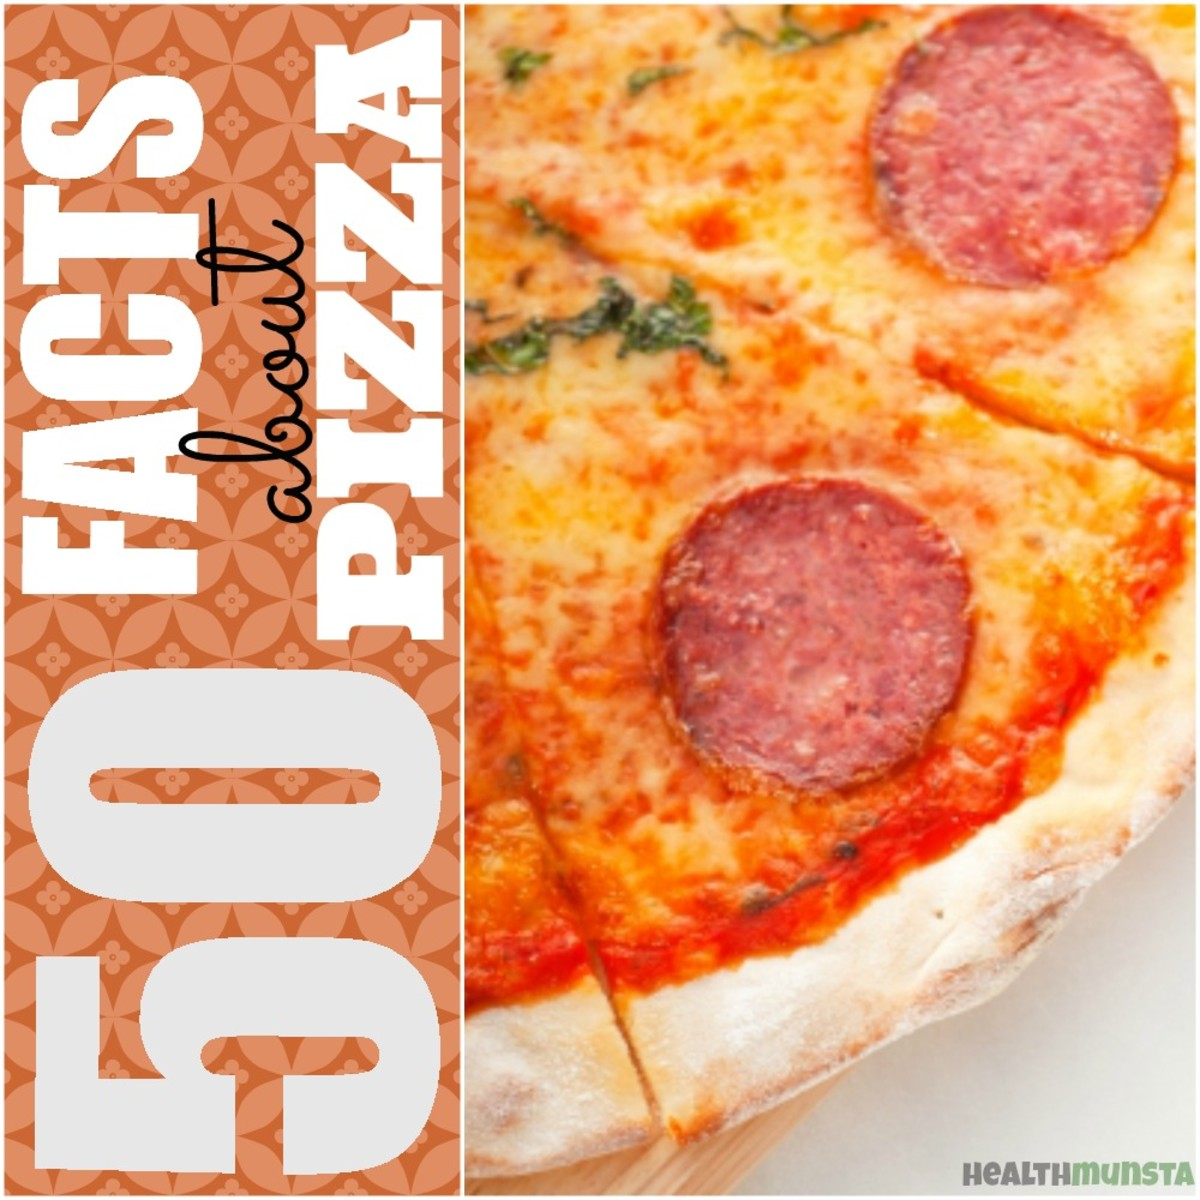 50 Fun Facts about Pizza